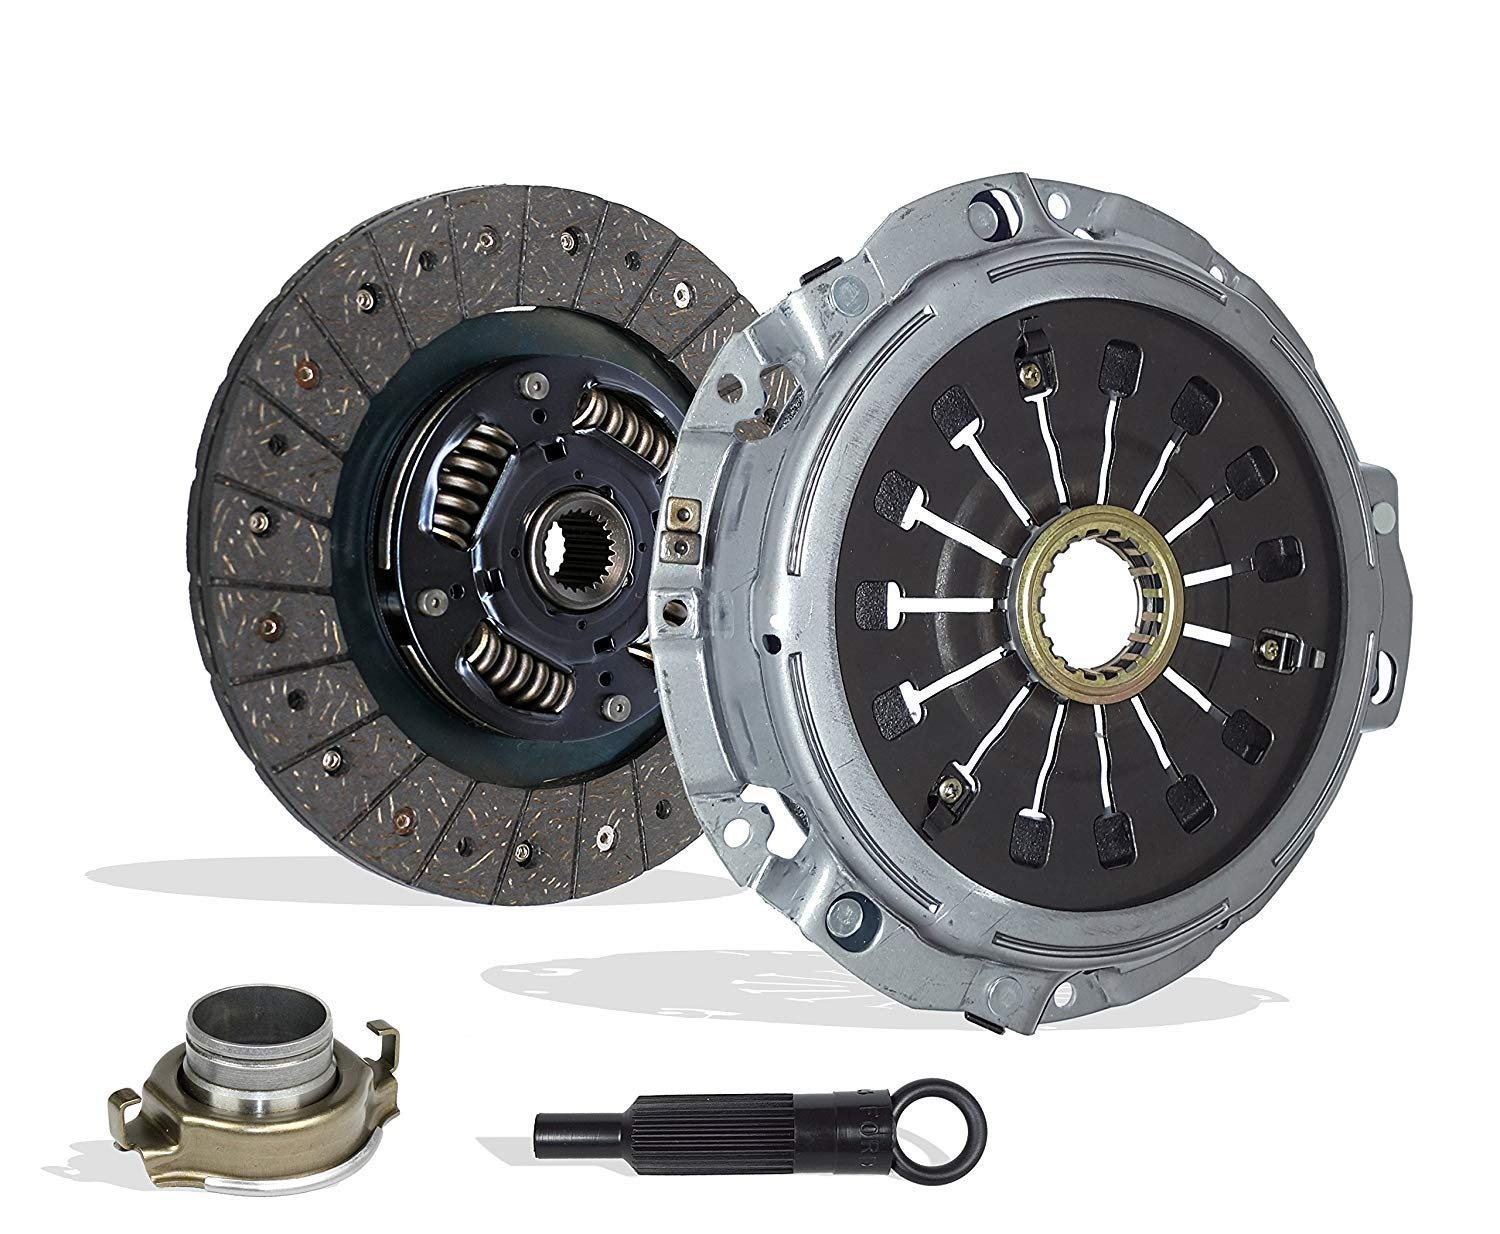 Clutch Kit works with Mitsubishi Eclipse Spyder Gt Gts Convertible Hatchback 2-Door 2000-2005 3.0L 2972CC 181Cu. In. V6 GAS SOHC Naturally Aspirated